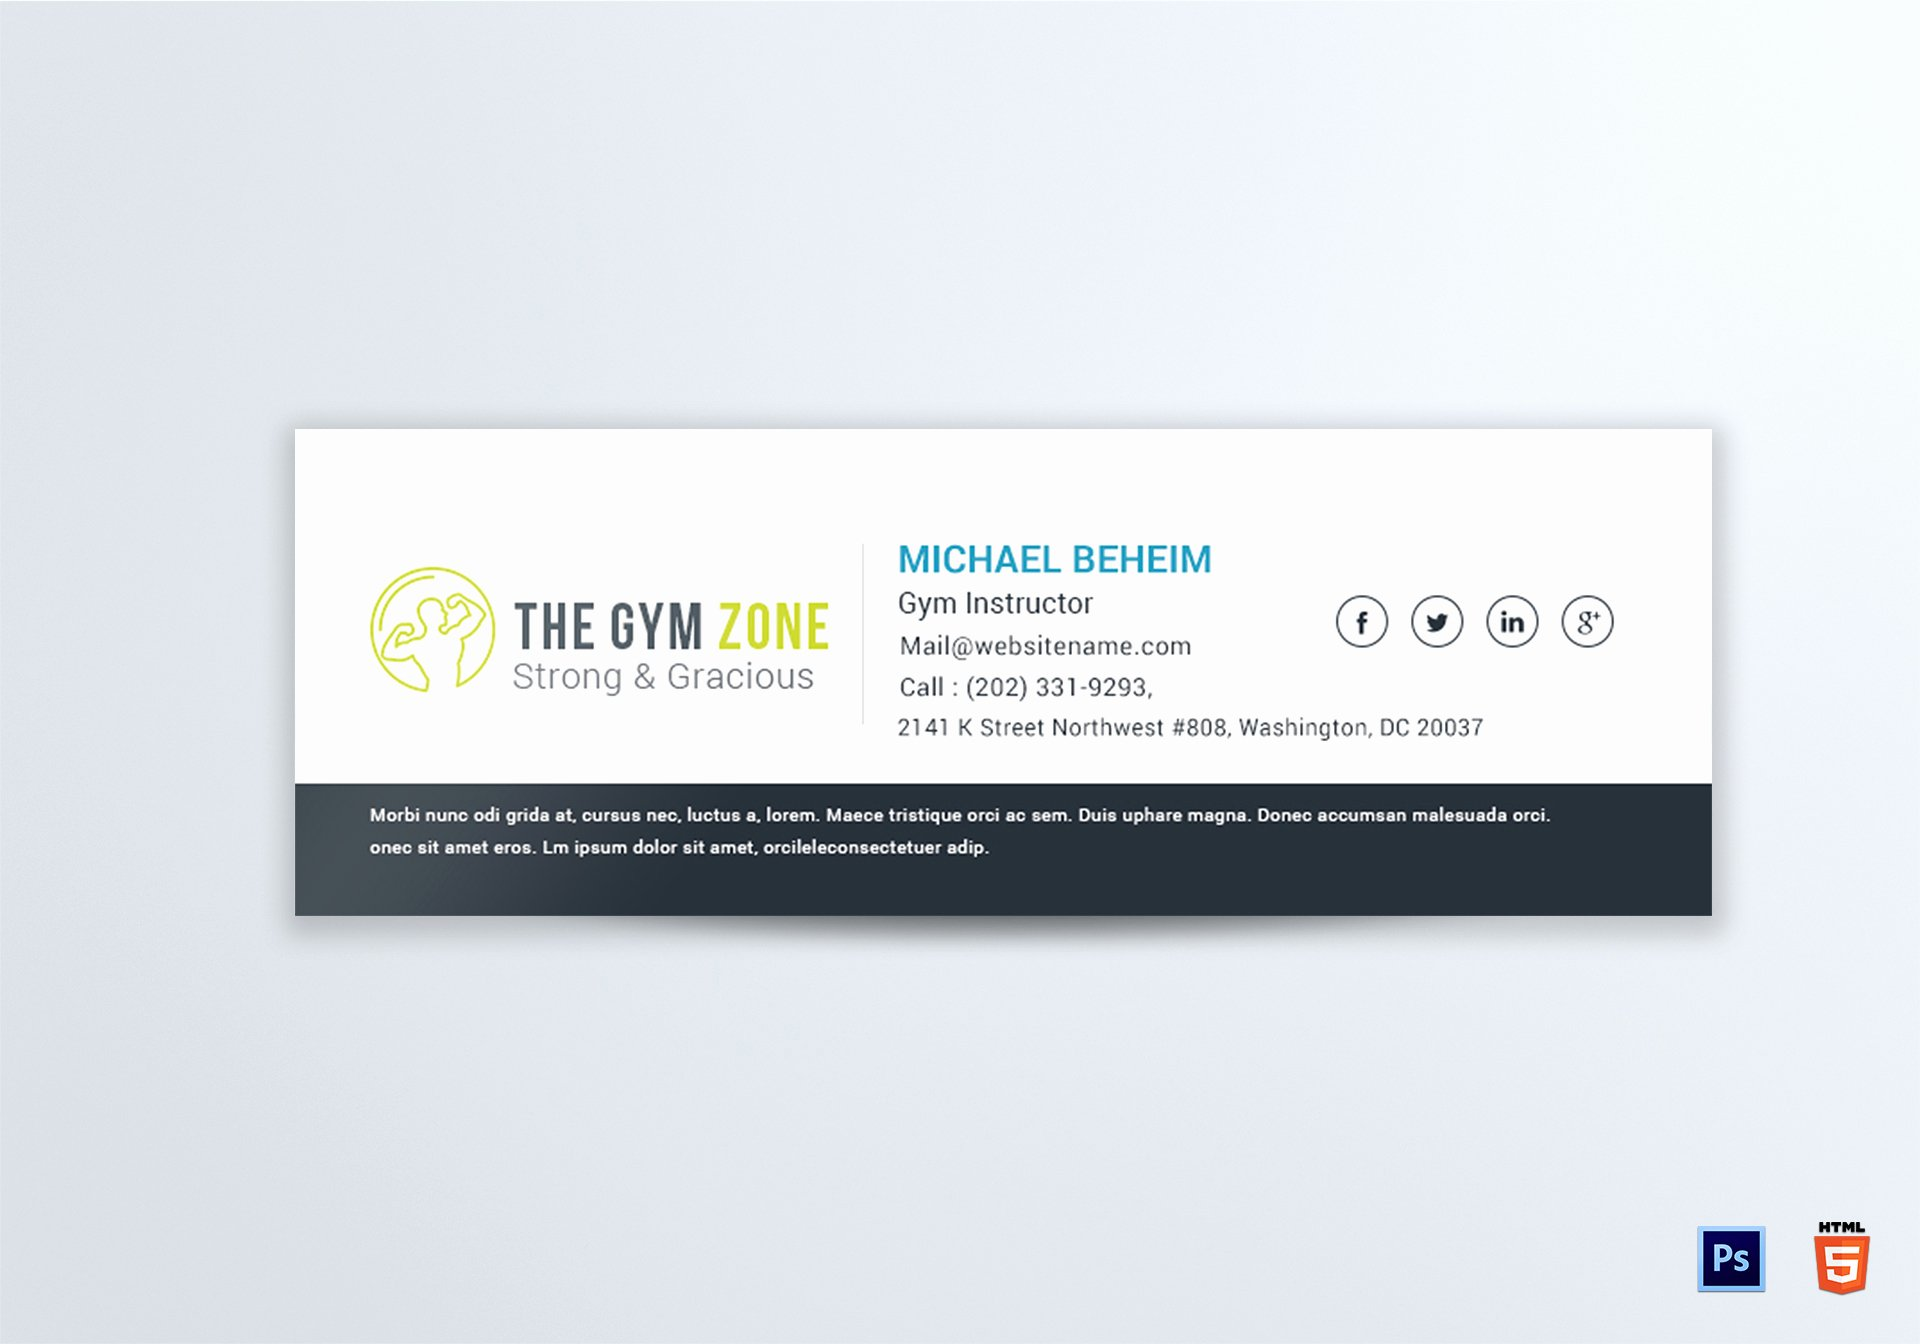 Gym Email Signature Design Template In Psd HTML